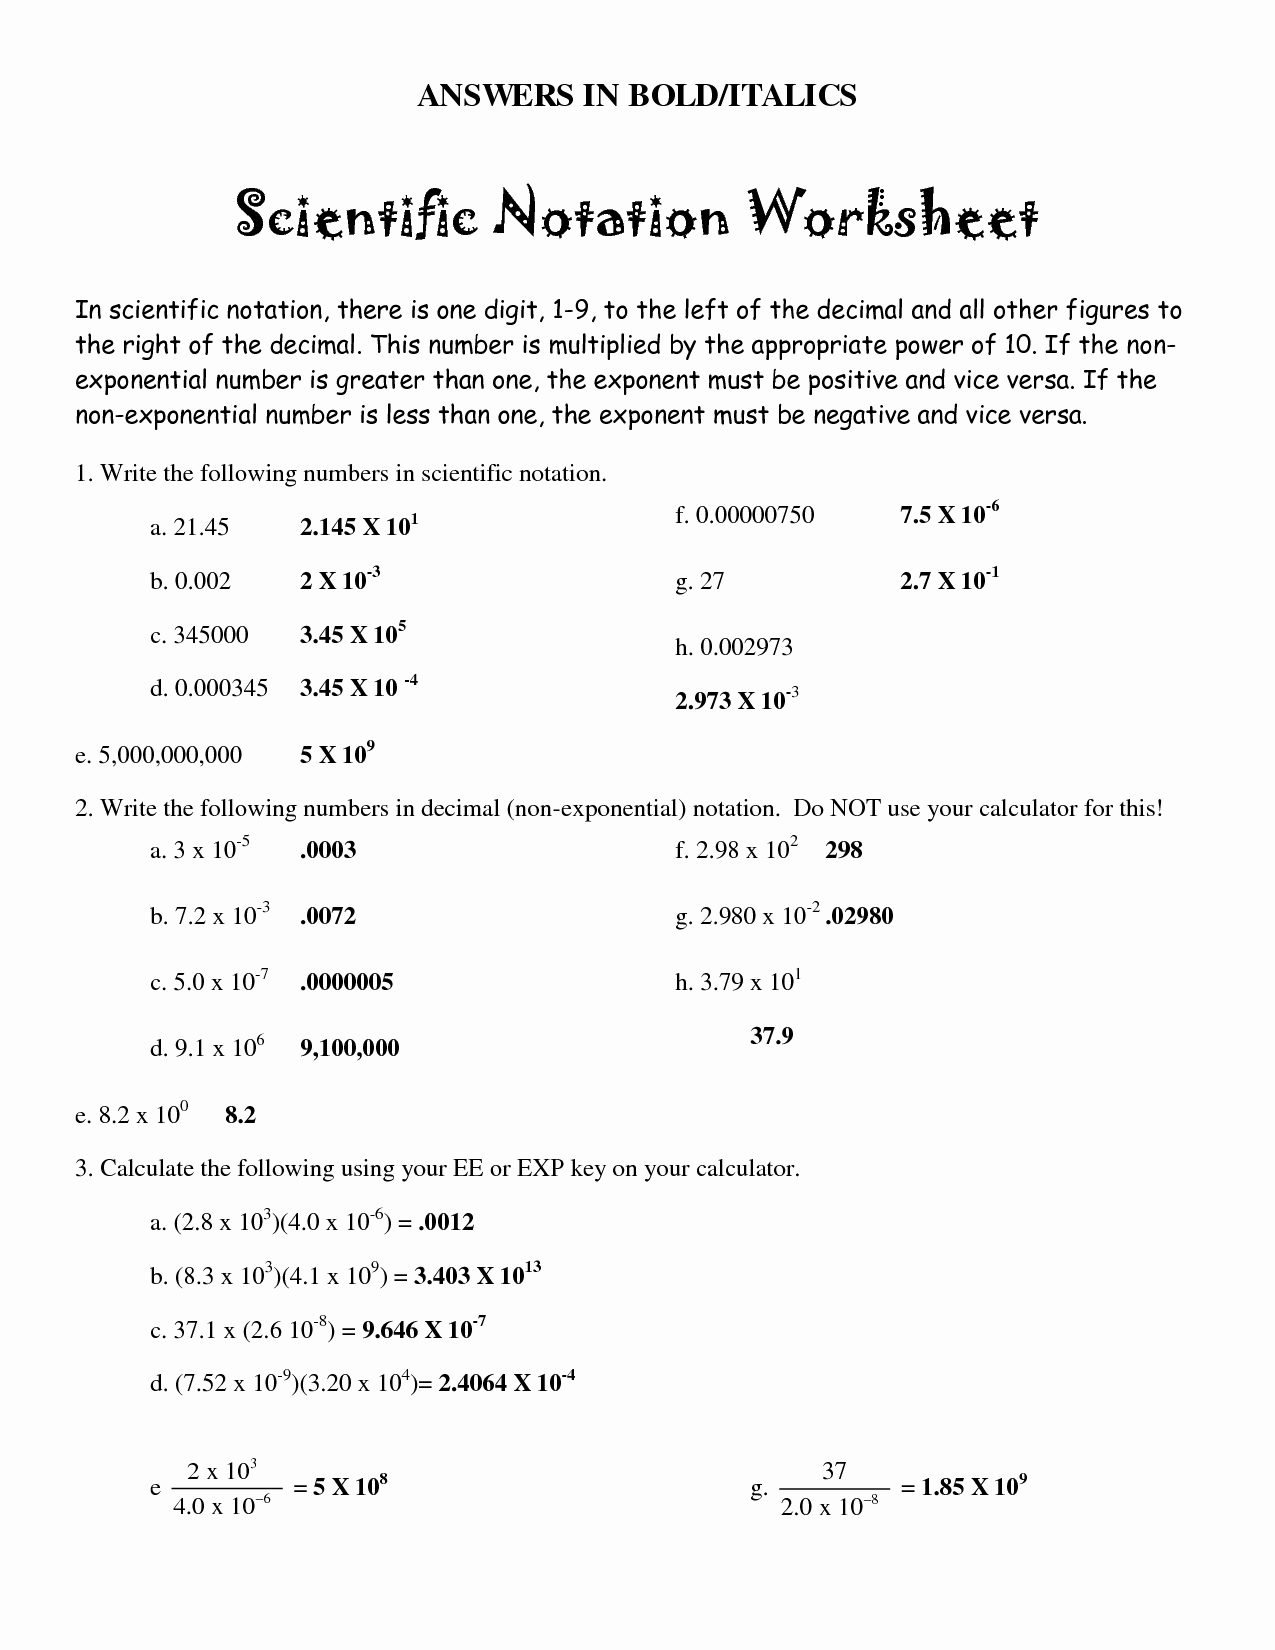 Scientific Notation Worksheet with Answers New Worksheet Scientific Notation Part 2 Answers